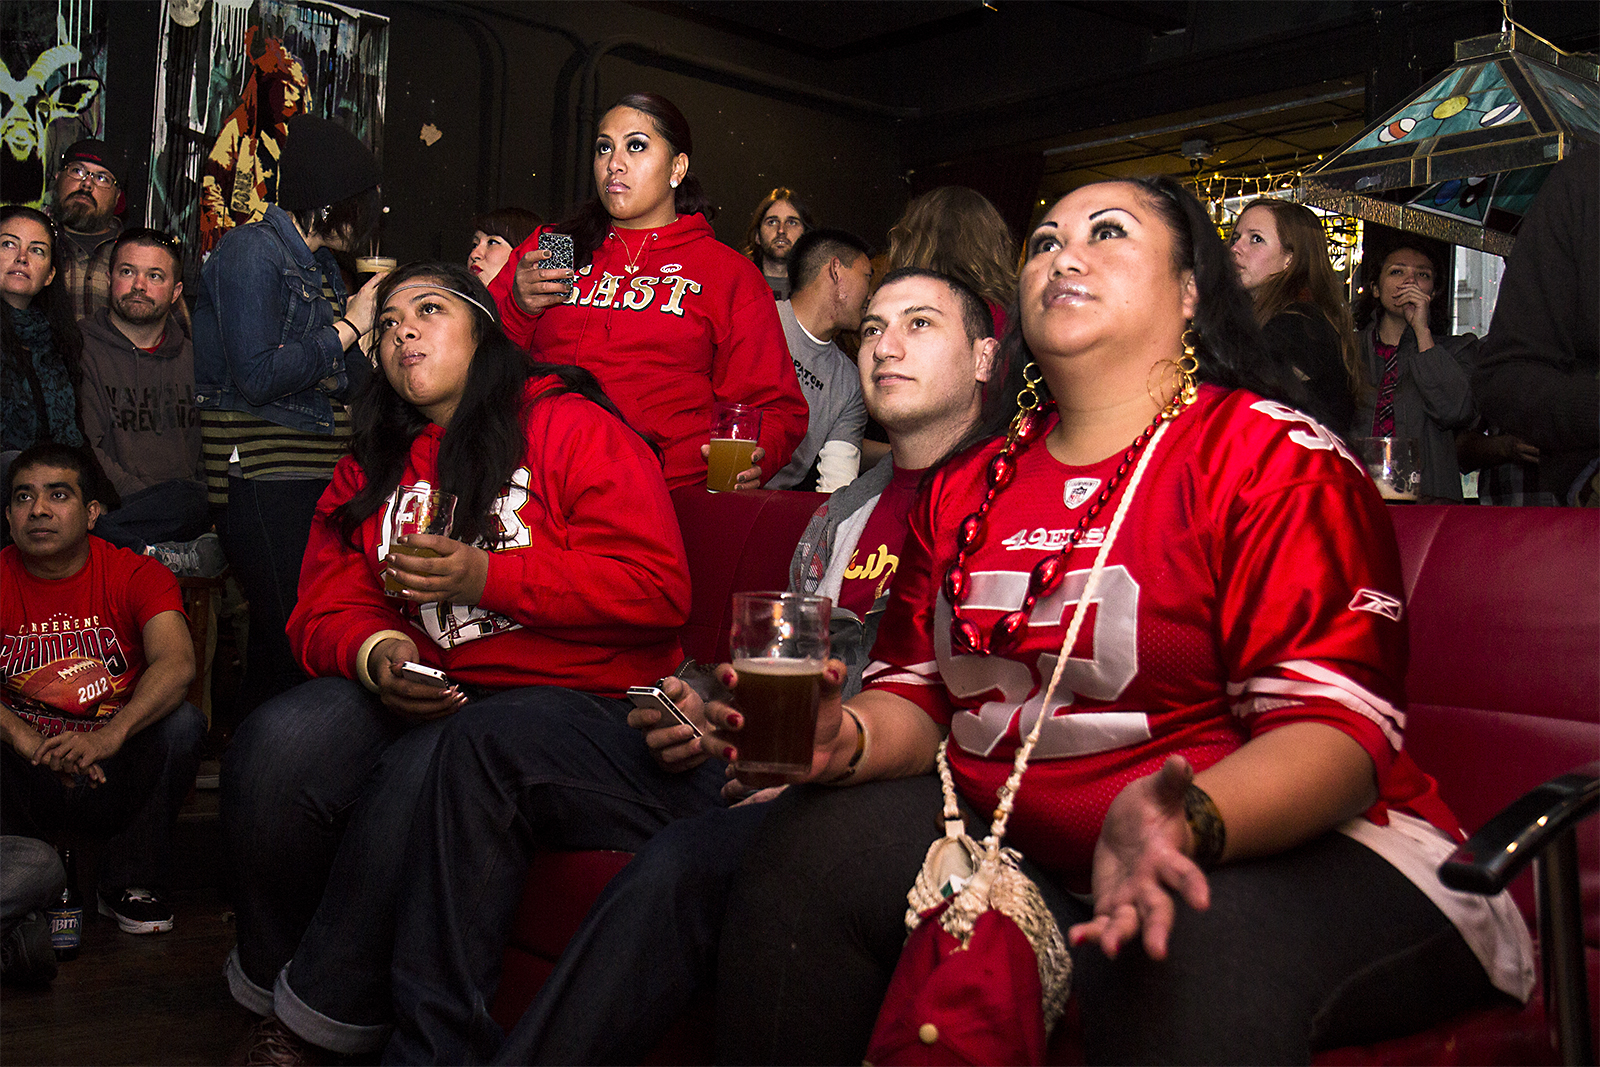 """Vernice Tafao and her friends watch the game at Gestalt. """"For me, this is not just a game,"""" she said. """"It's tradition. It's like a treasure."""" (Photo by Marta Franco)"""